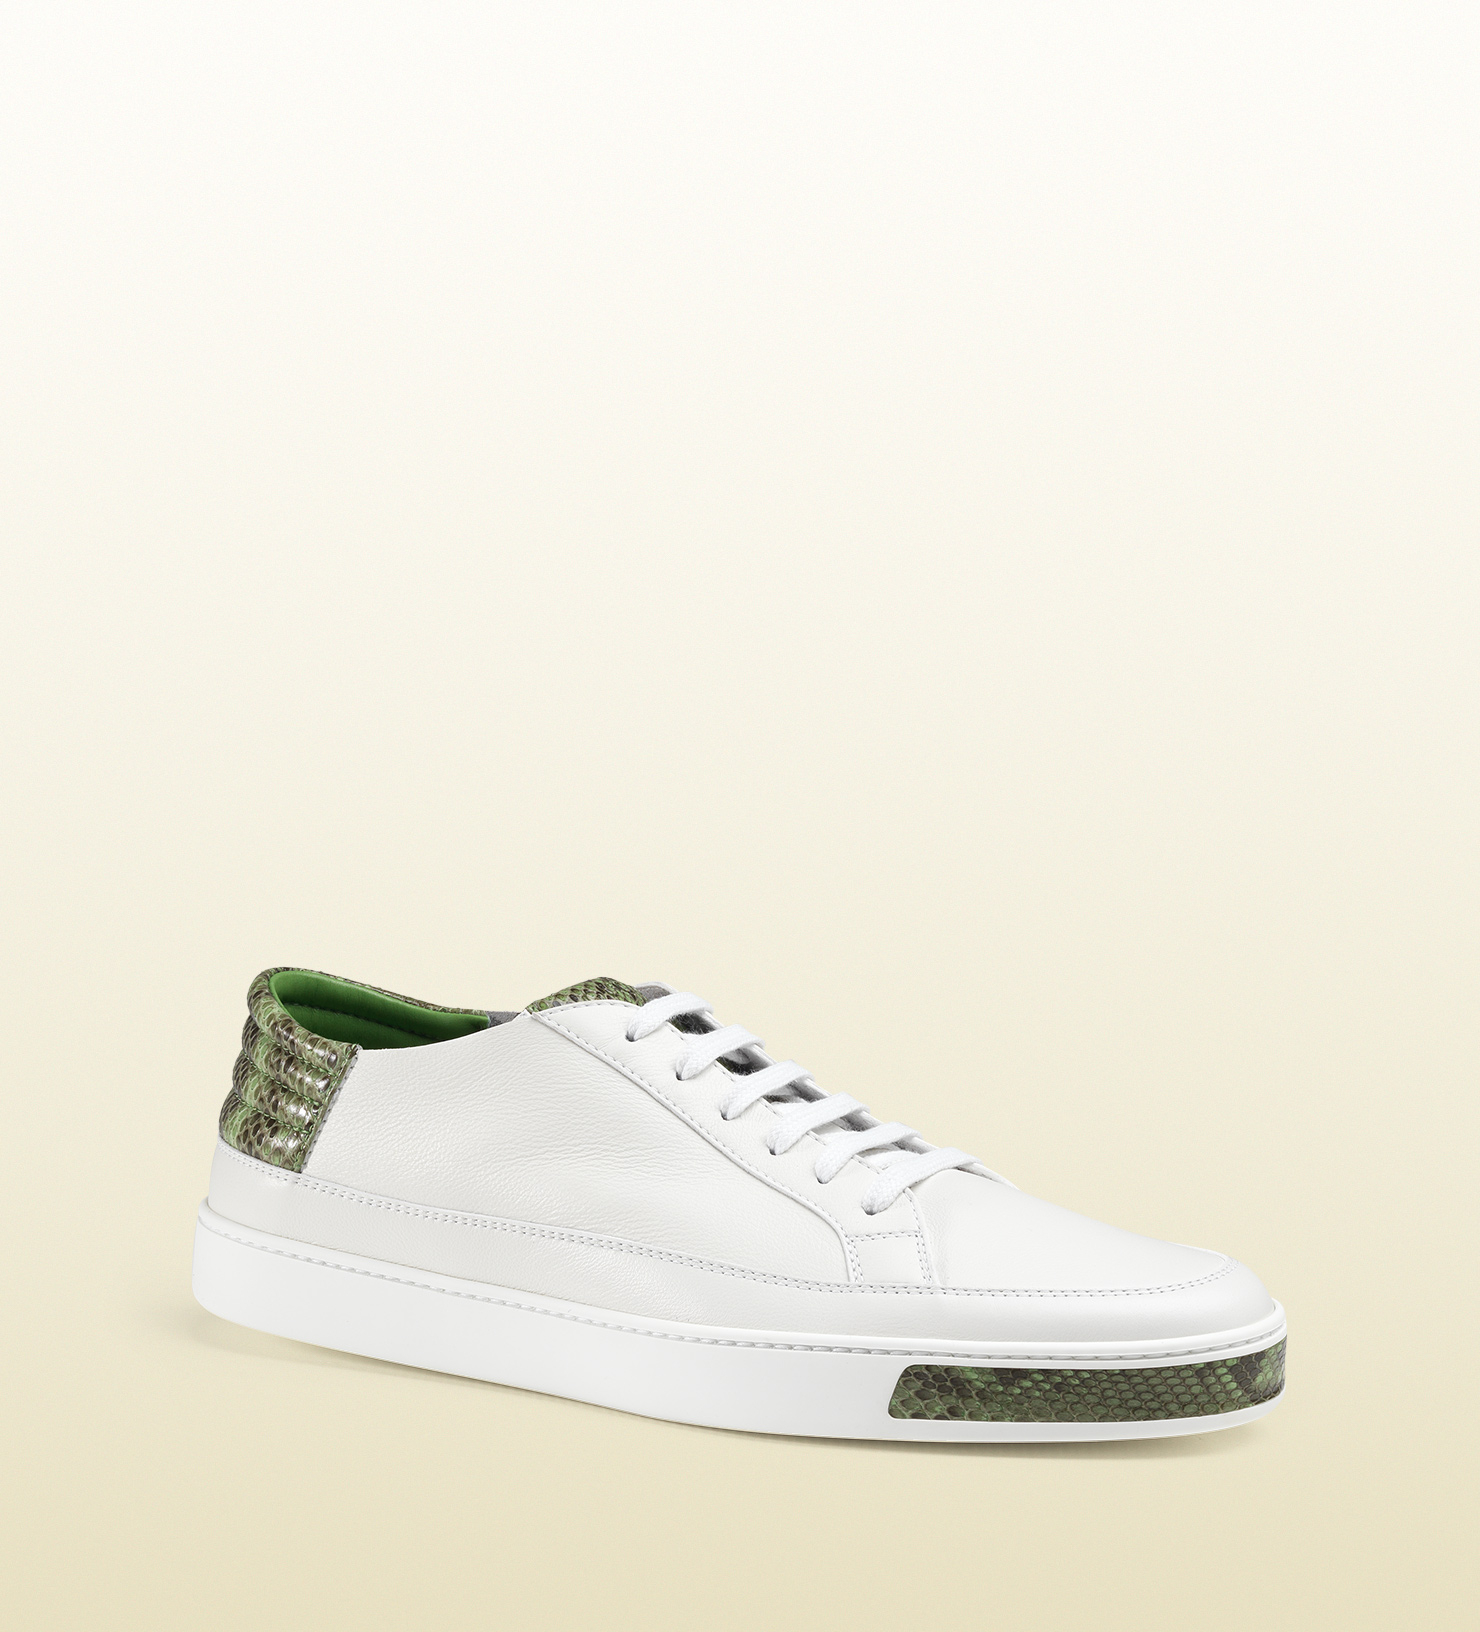 6cd86ad4004 Lyst - Gucci Online Exclusive Leather And Python Low-top Sneaker in ...